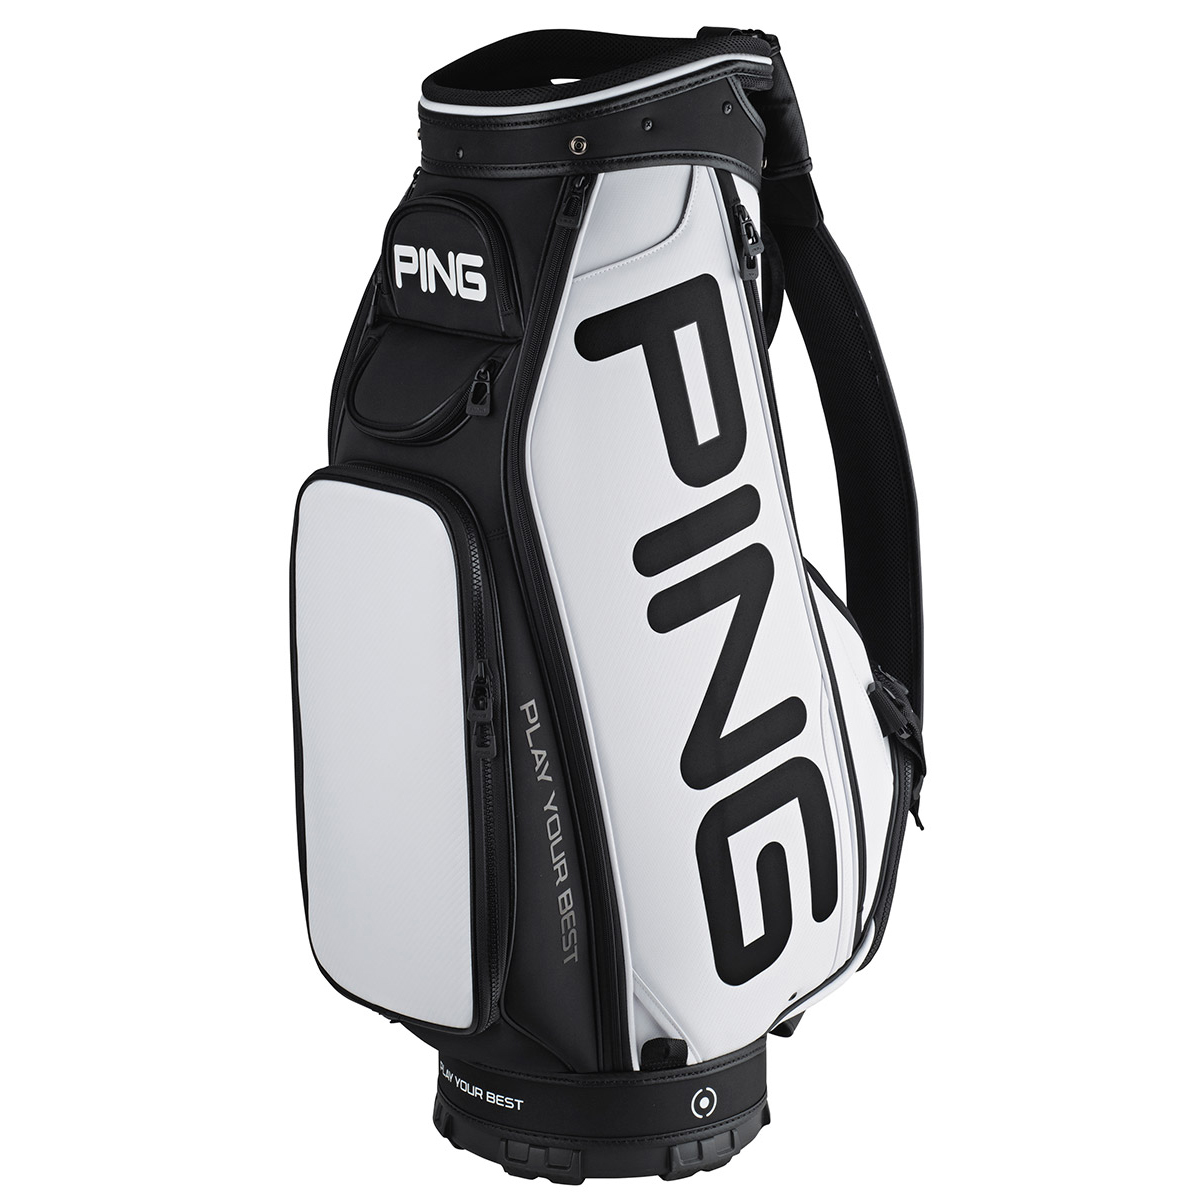 a6c3cceae3 Ping tour staff bag from american golf jpg 1200x1200 Ping golf staff bags